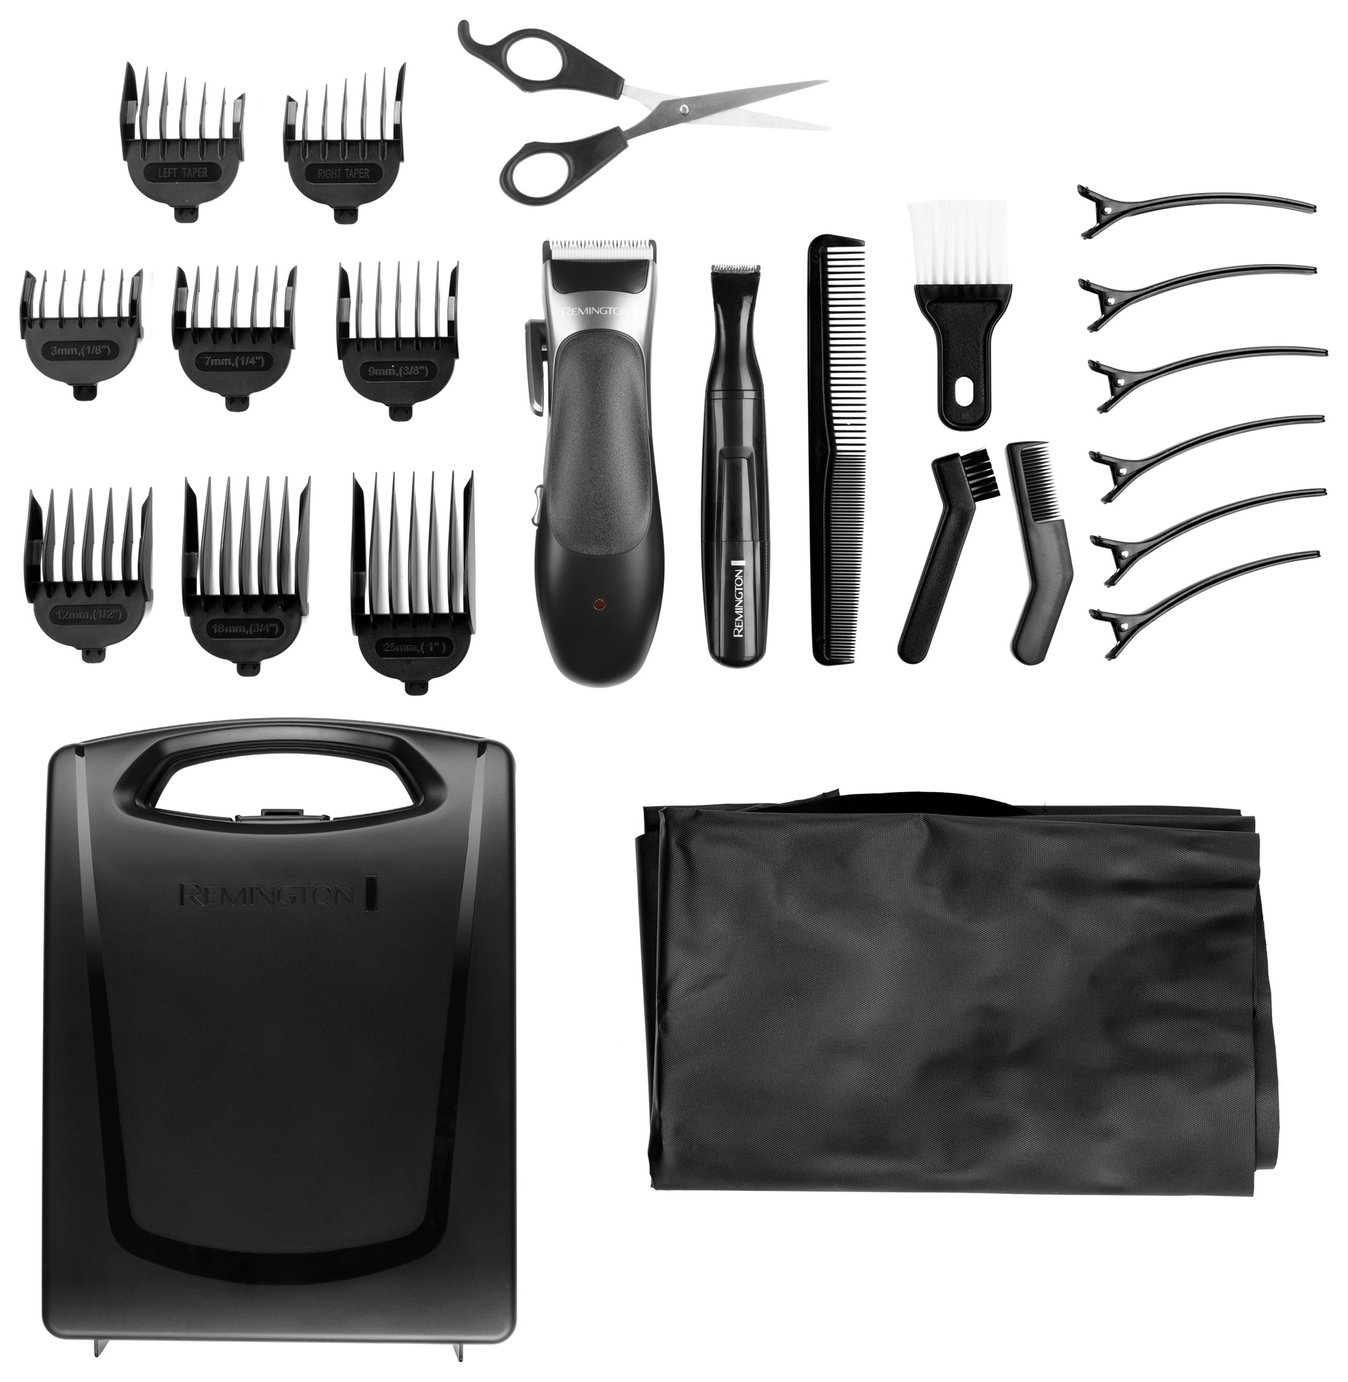 Remington 25 Piece Stylist Men's Hair Clippers Set HC366